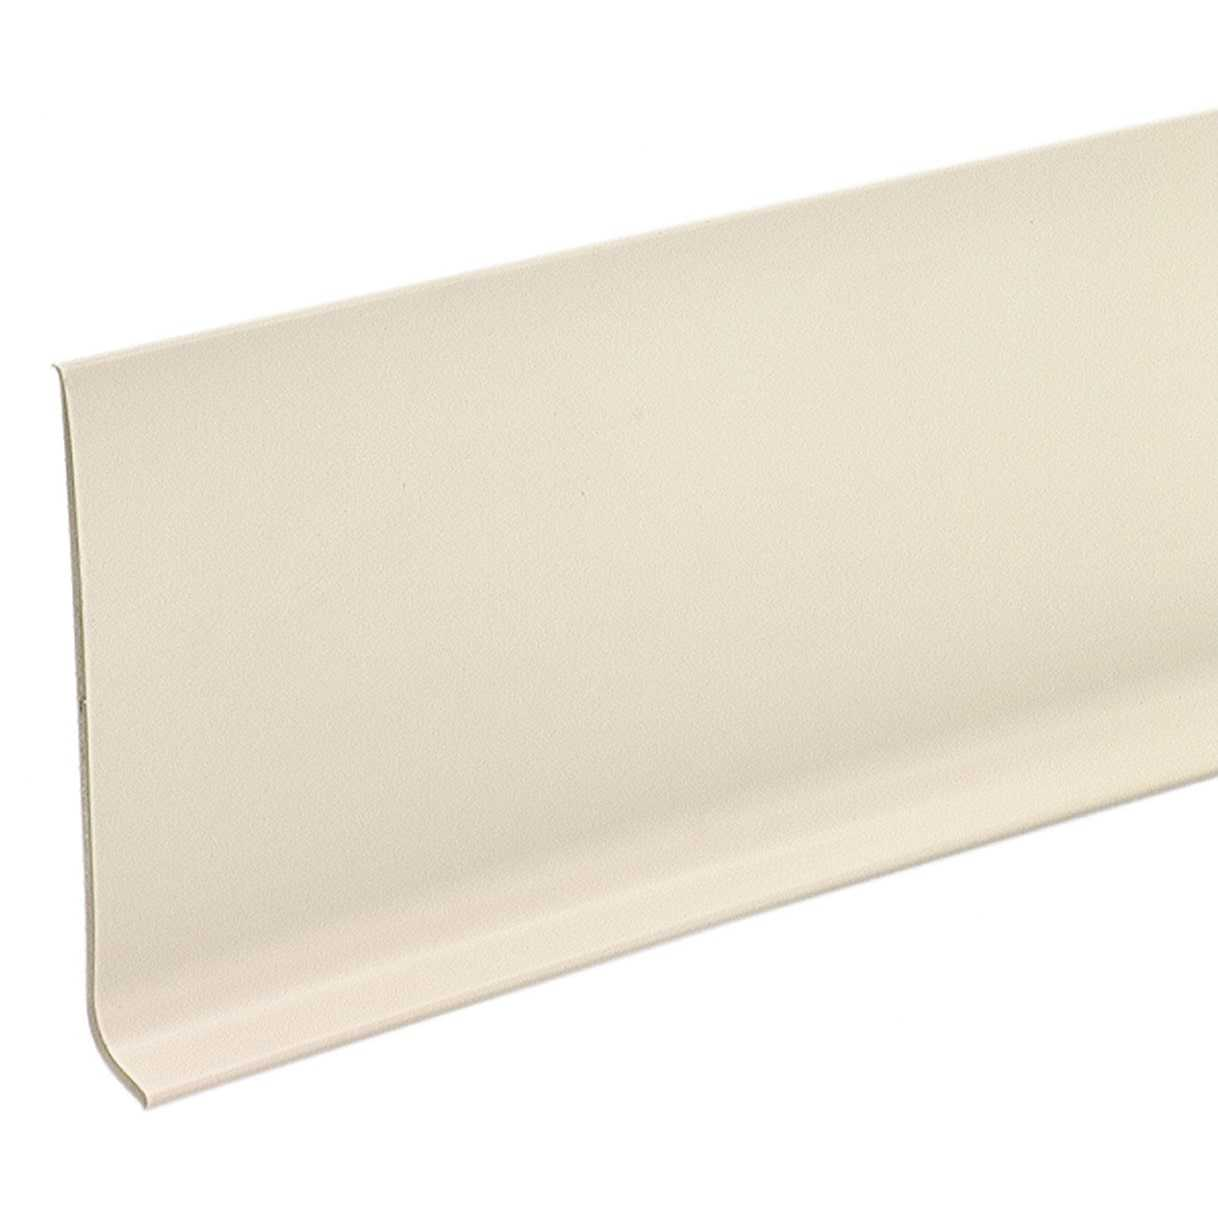 M-D Products 73899 Almond Vinyl Dryback Wall Base, 4' x 60'